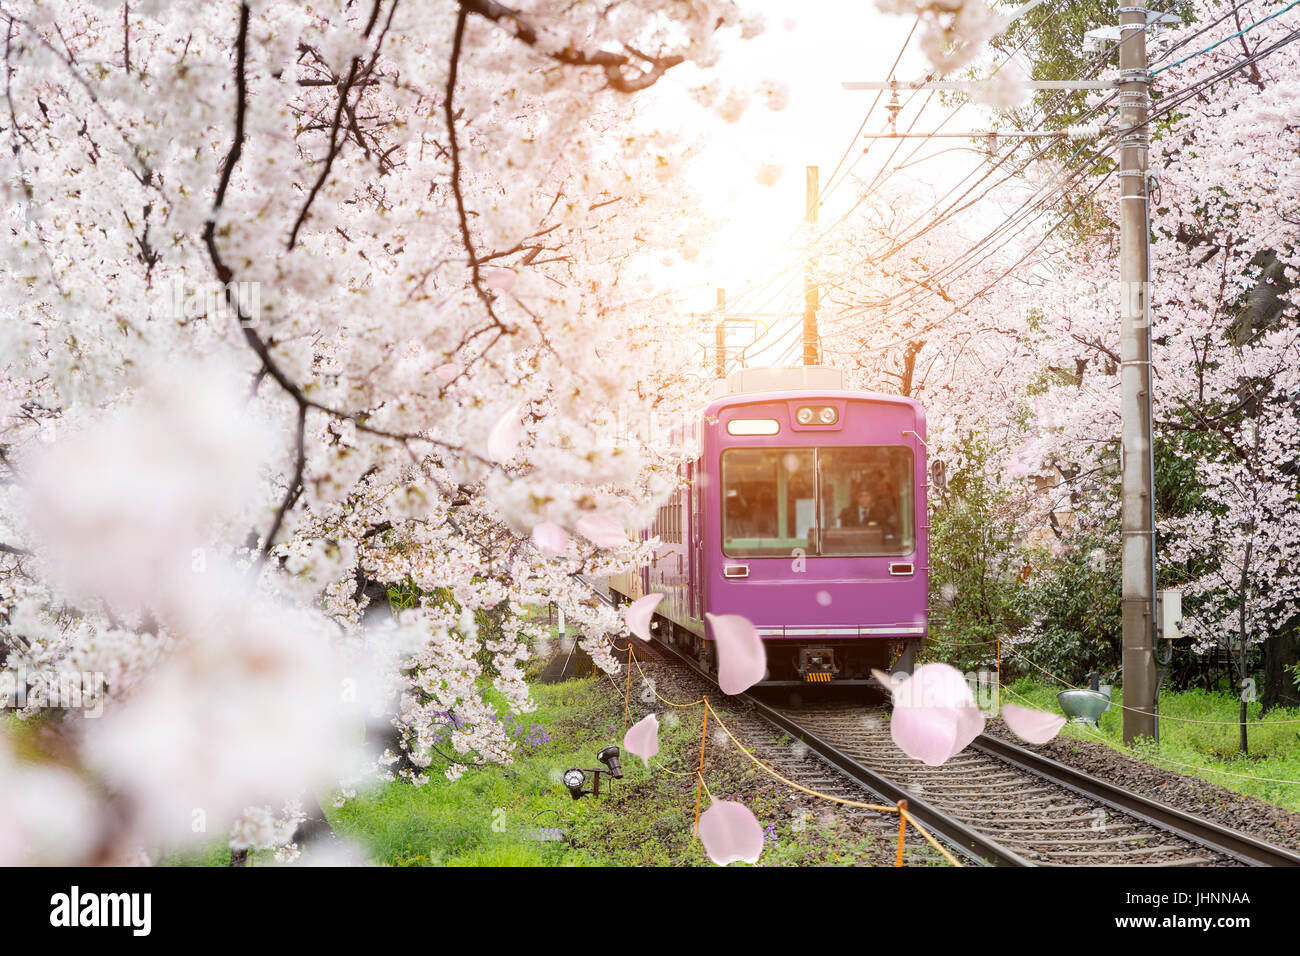 View of Kyoto local train traveling on rail tracks with flourishing cherry blossoms along the railway in Kyoto, - Stock Image